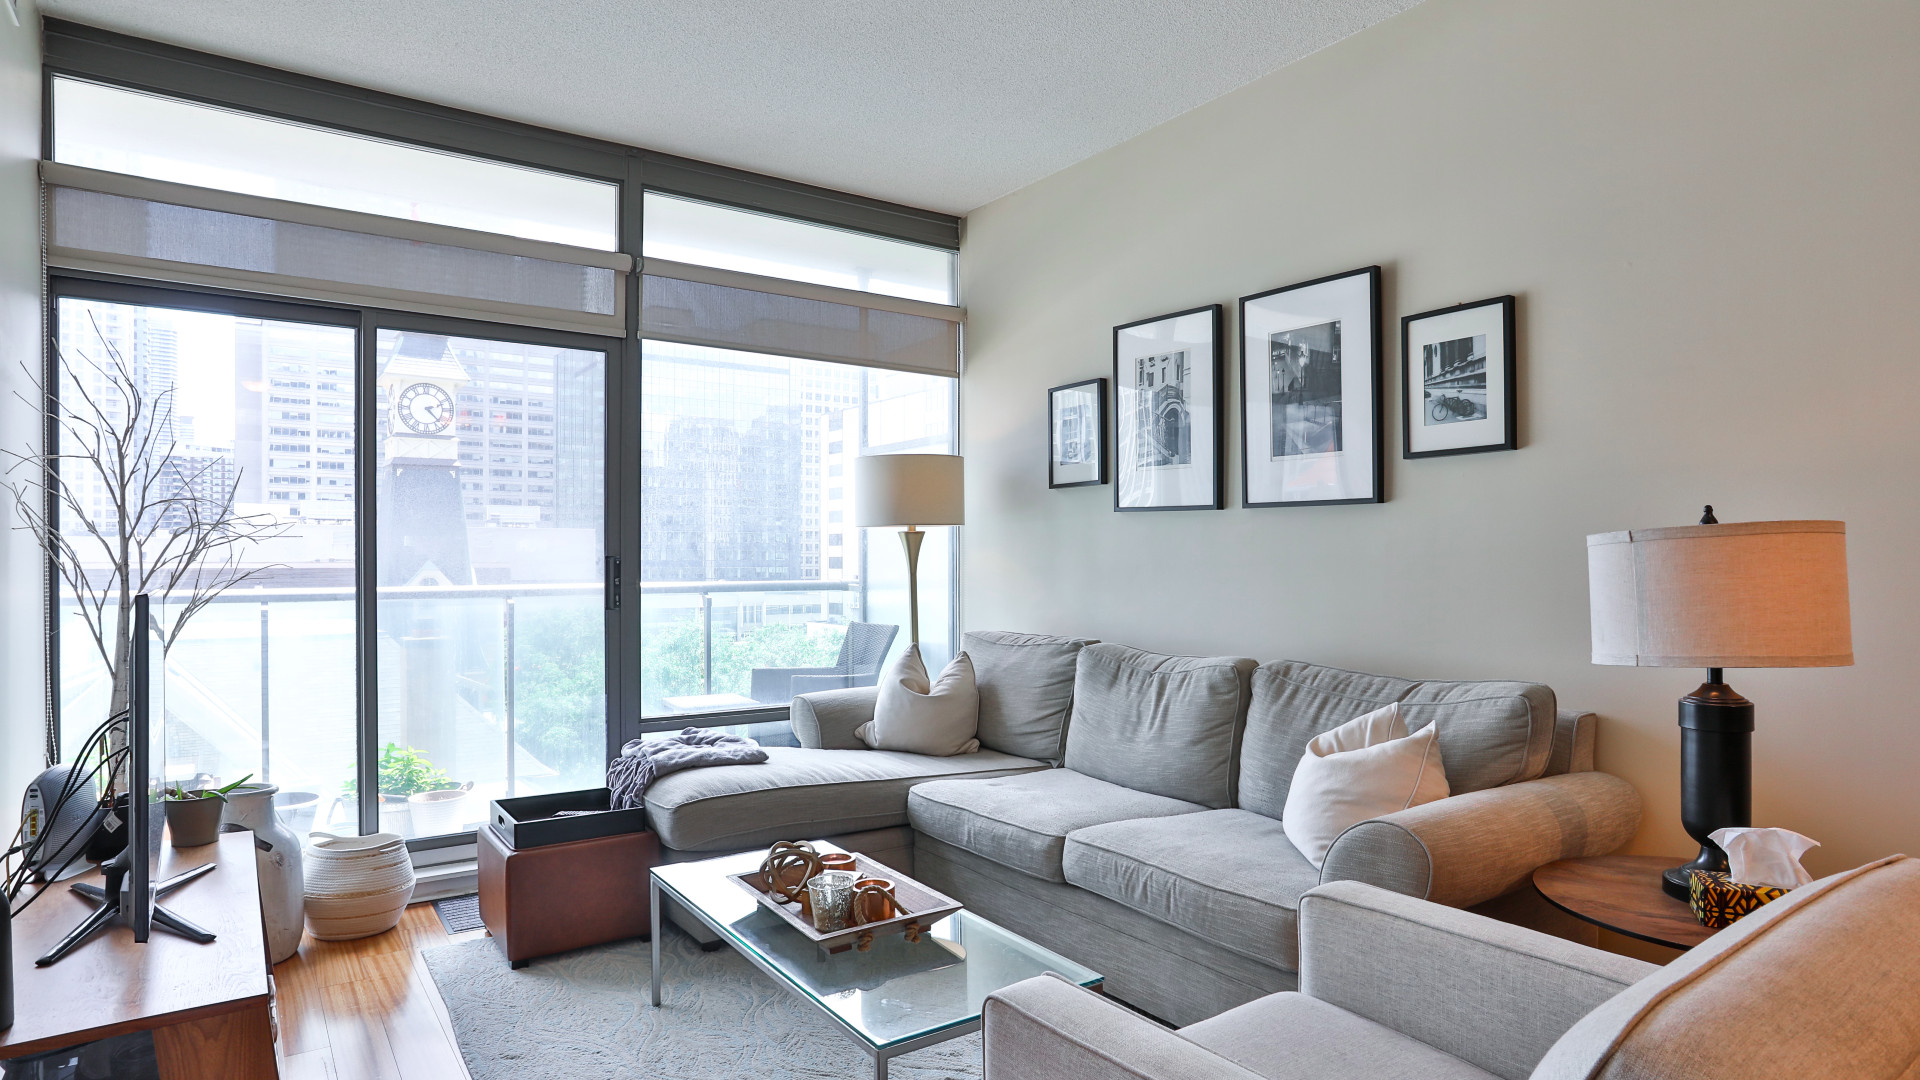 A photo of the living room and floor-to-ceiling windows.